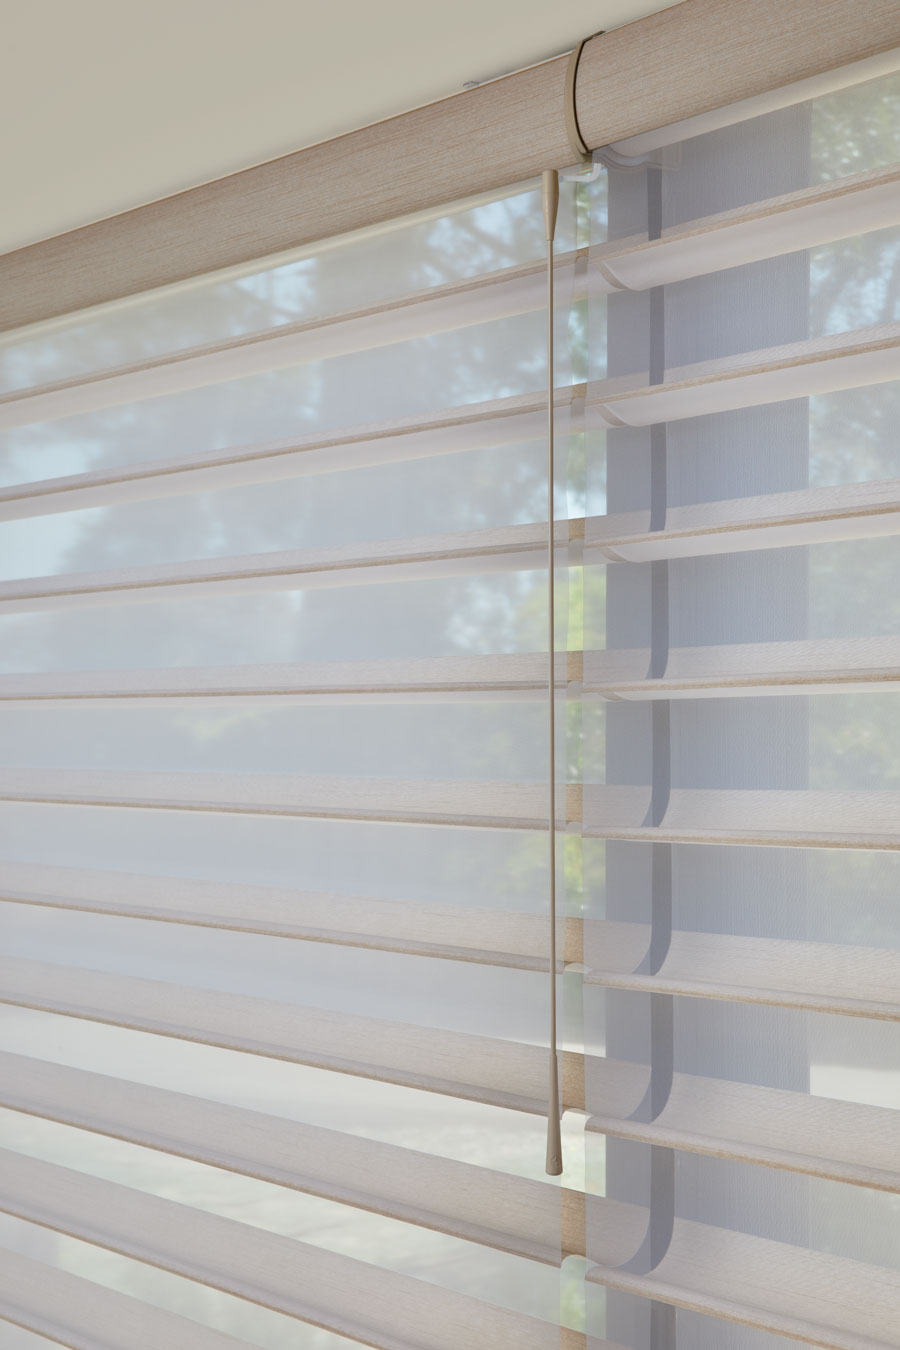 SoftTouch® system for shades